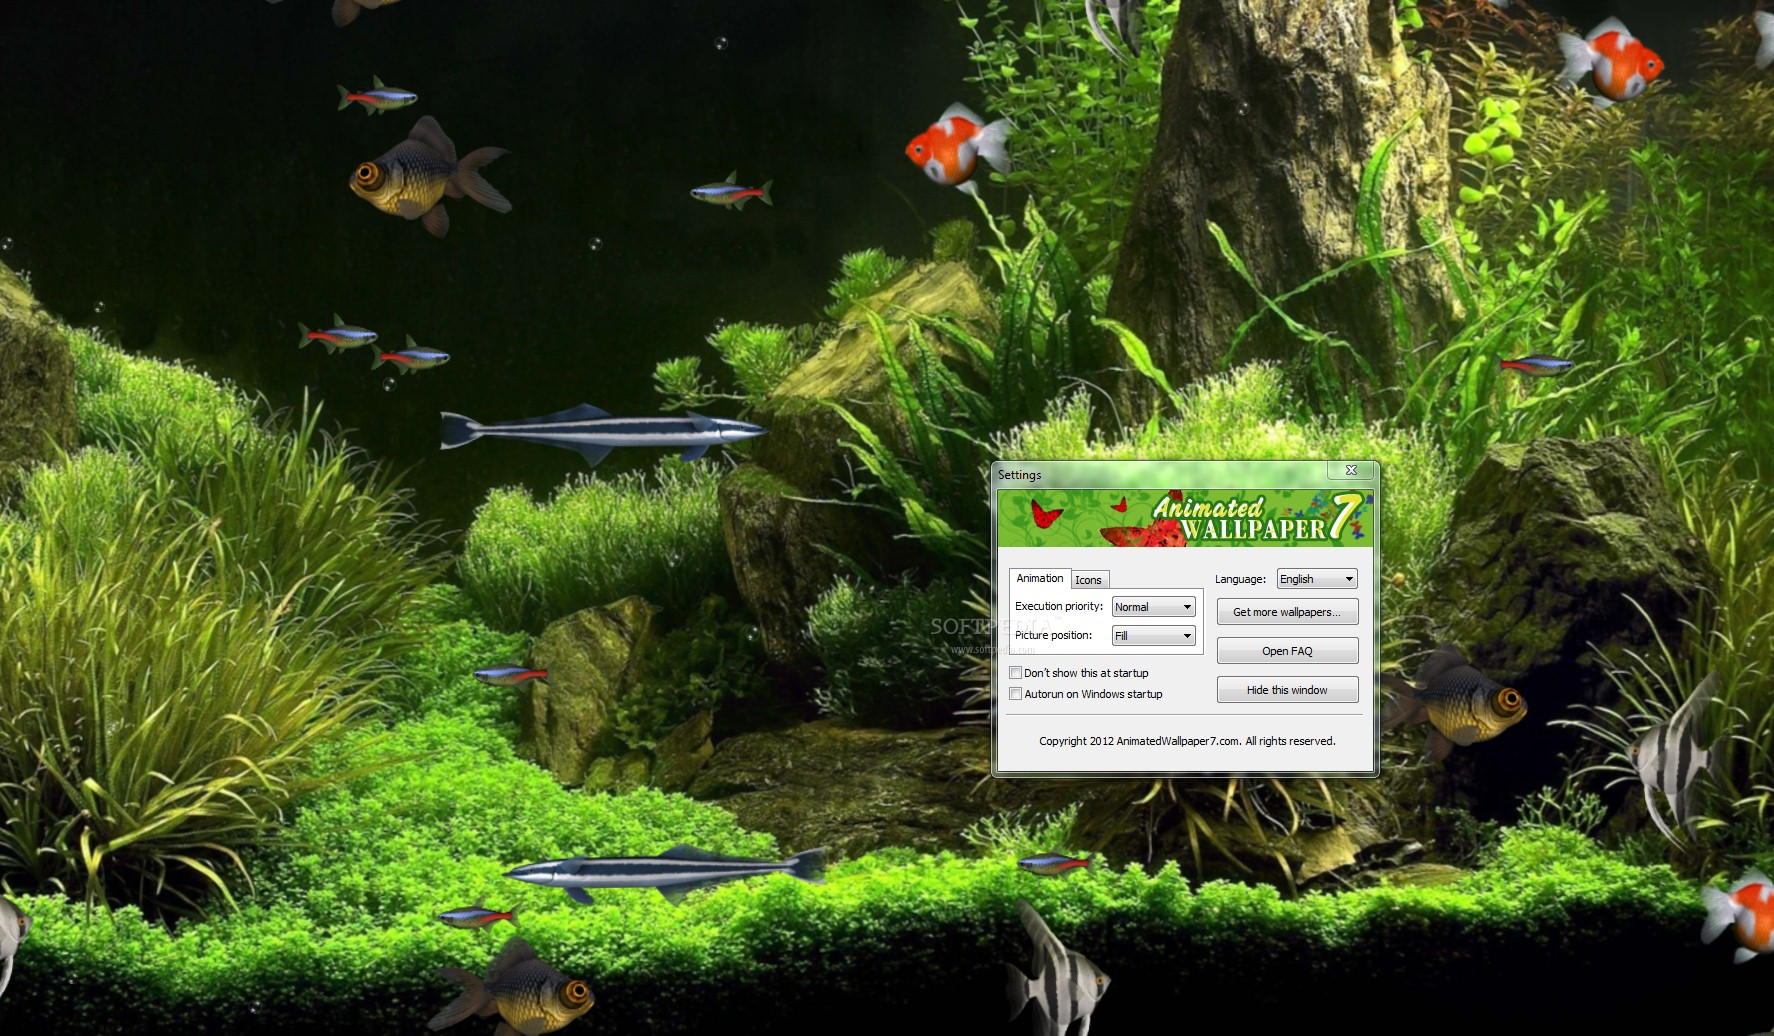 Virtual Aquarium Animated Wallpaper Screenshots, screen capture